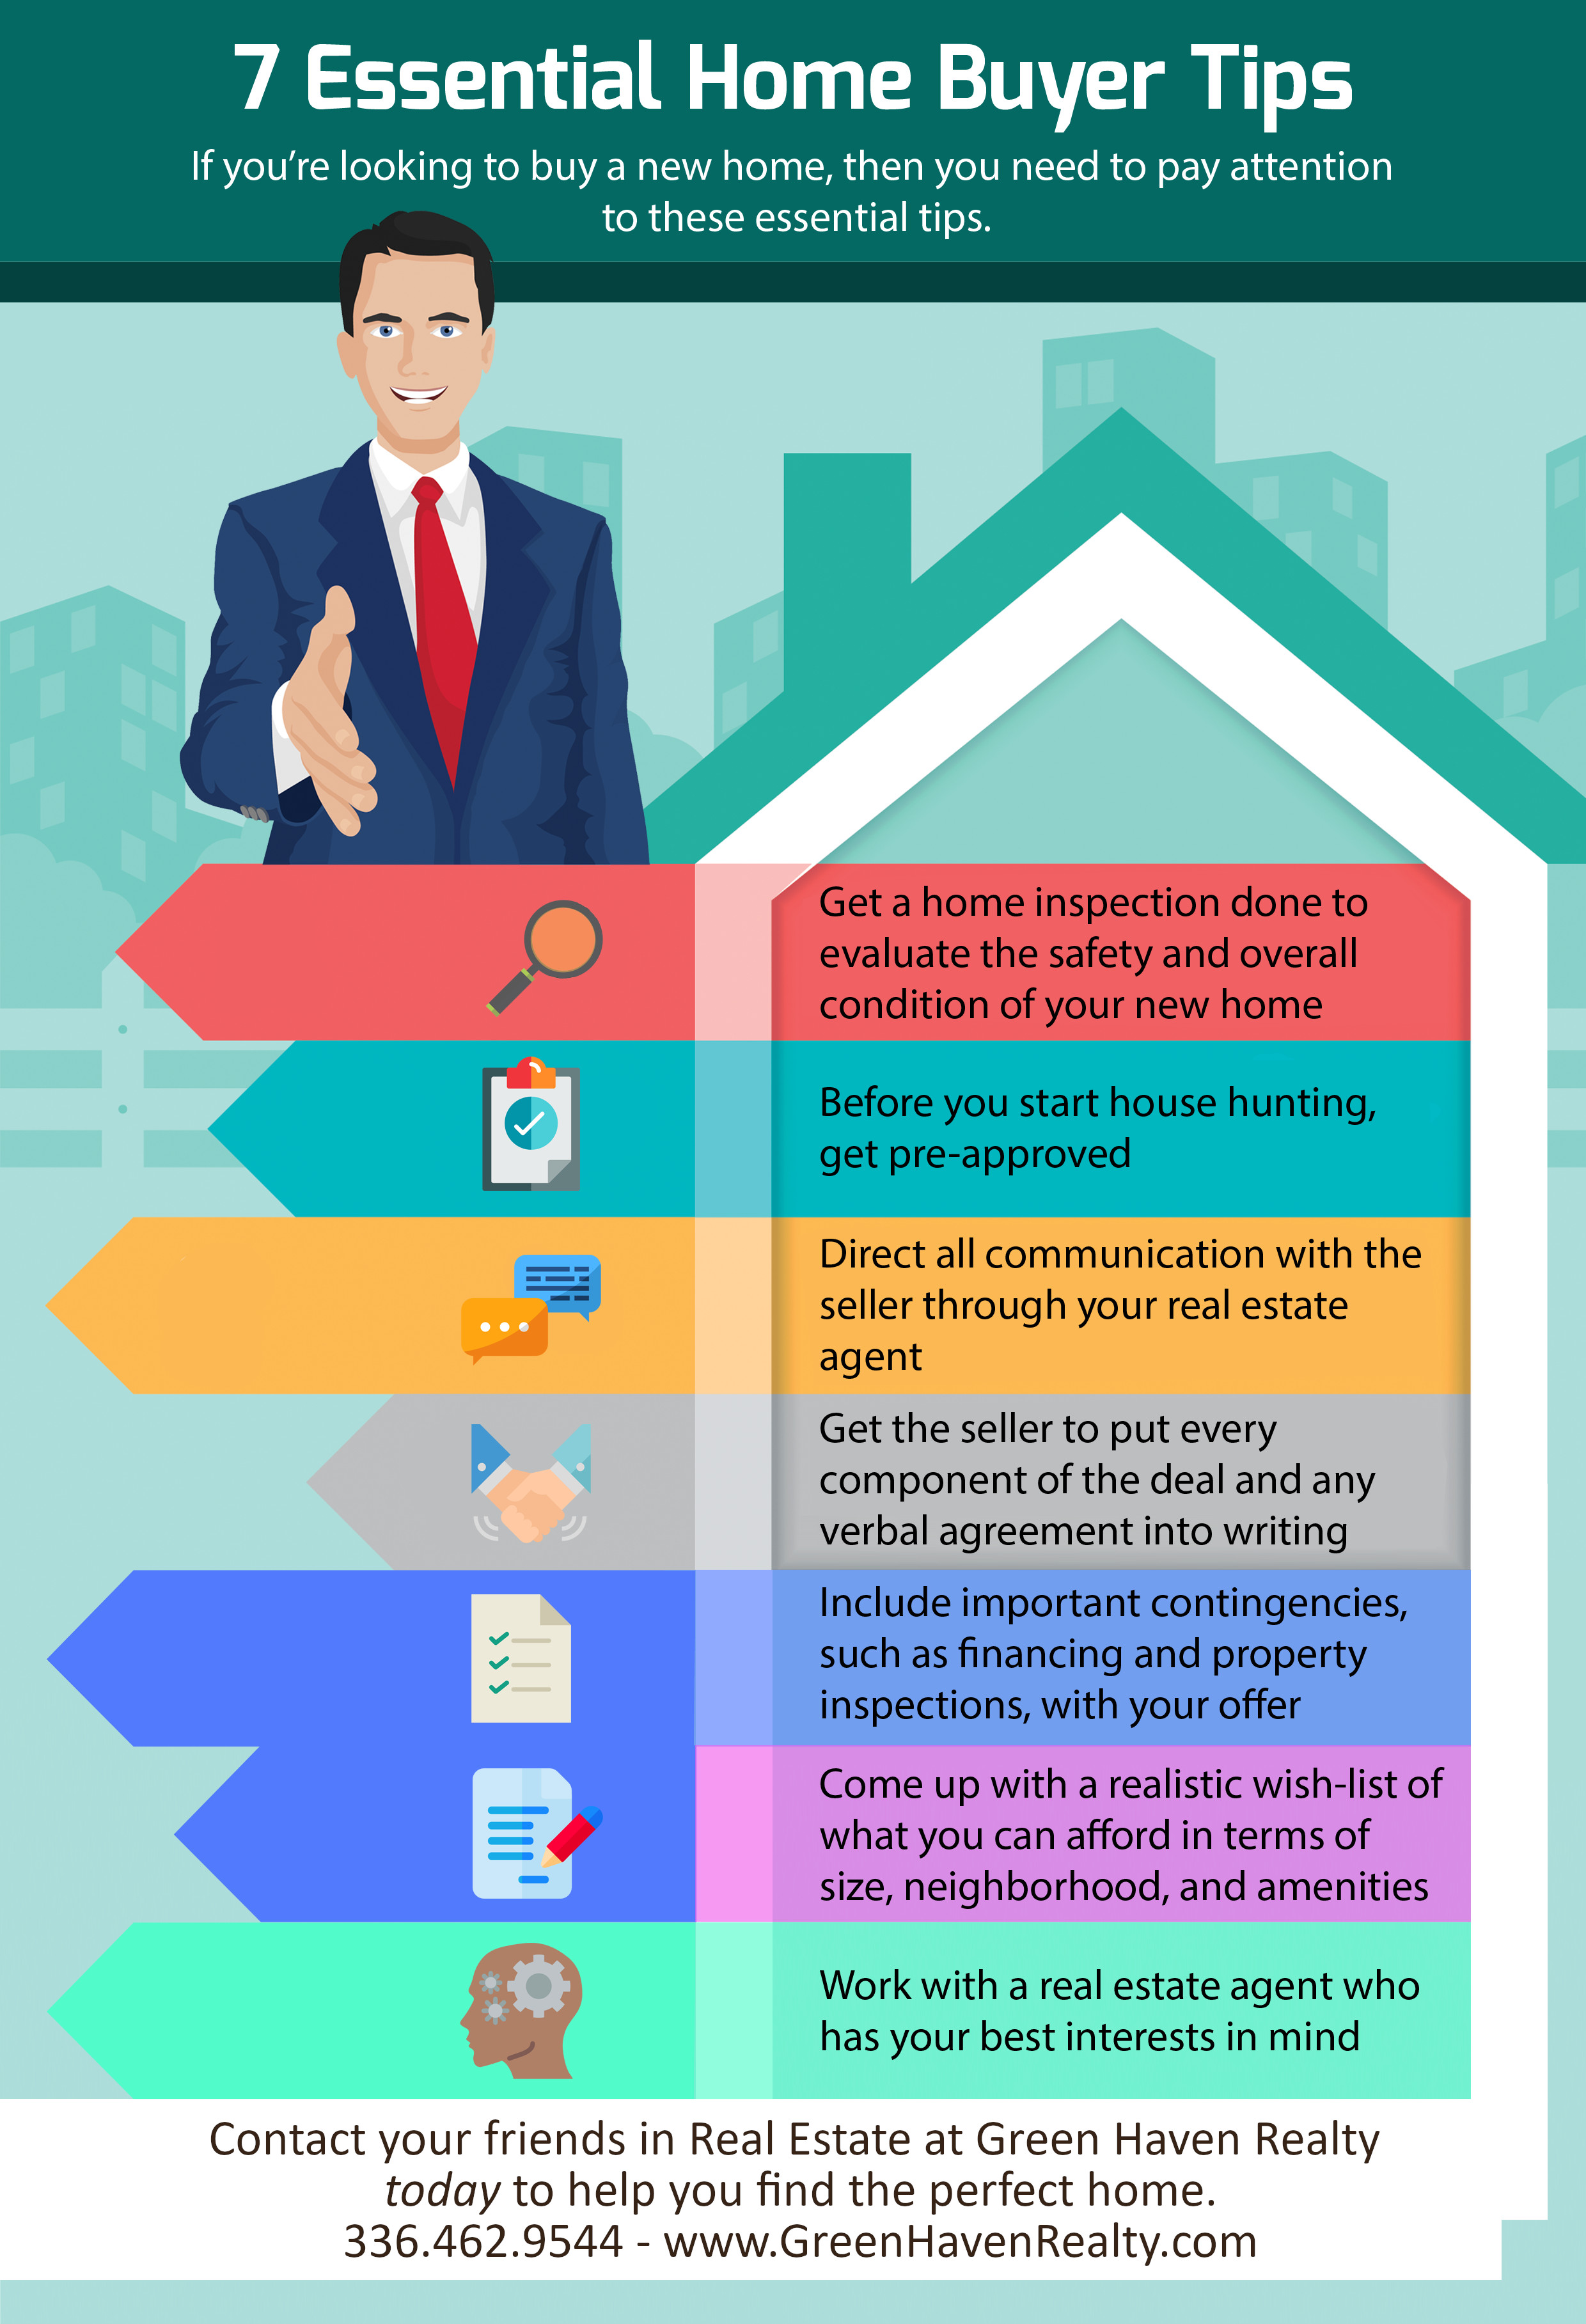 7 Essential Tips Every Home Buyer Should Know